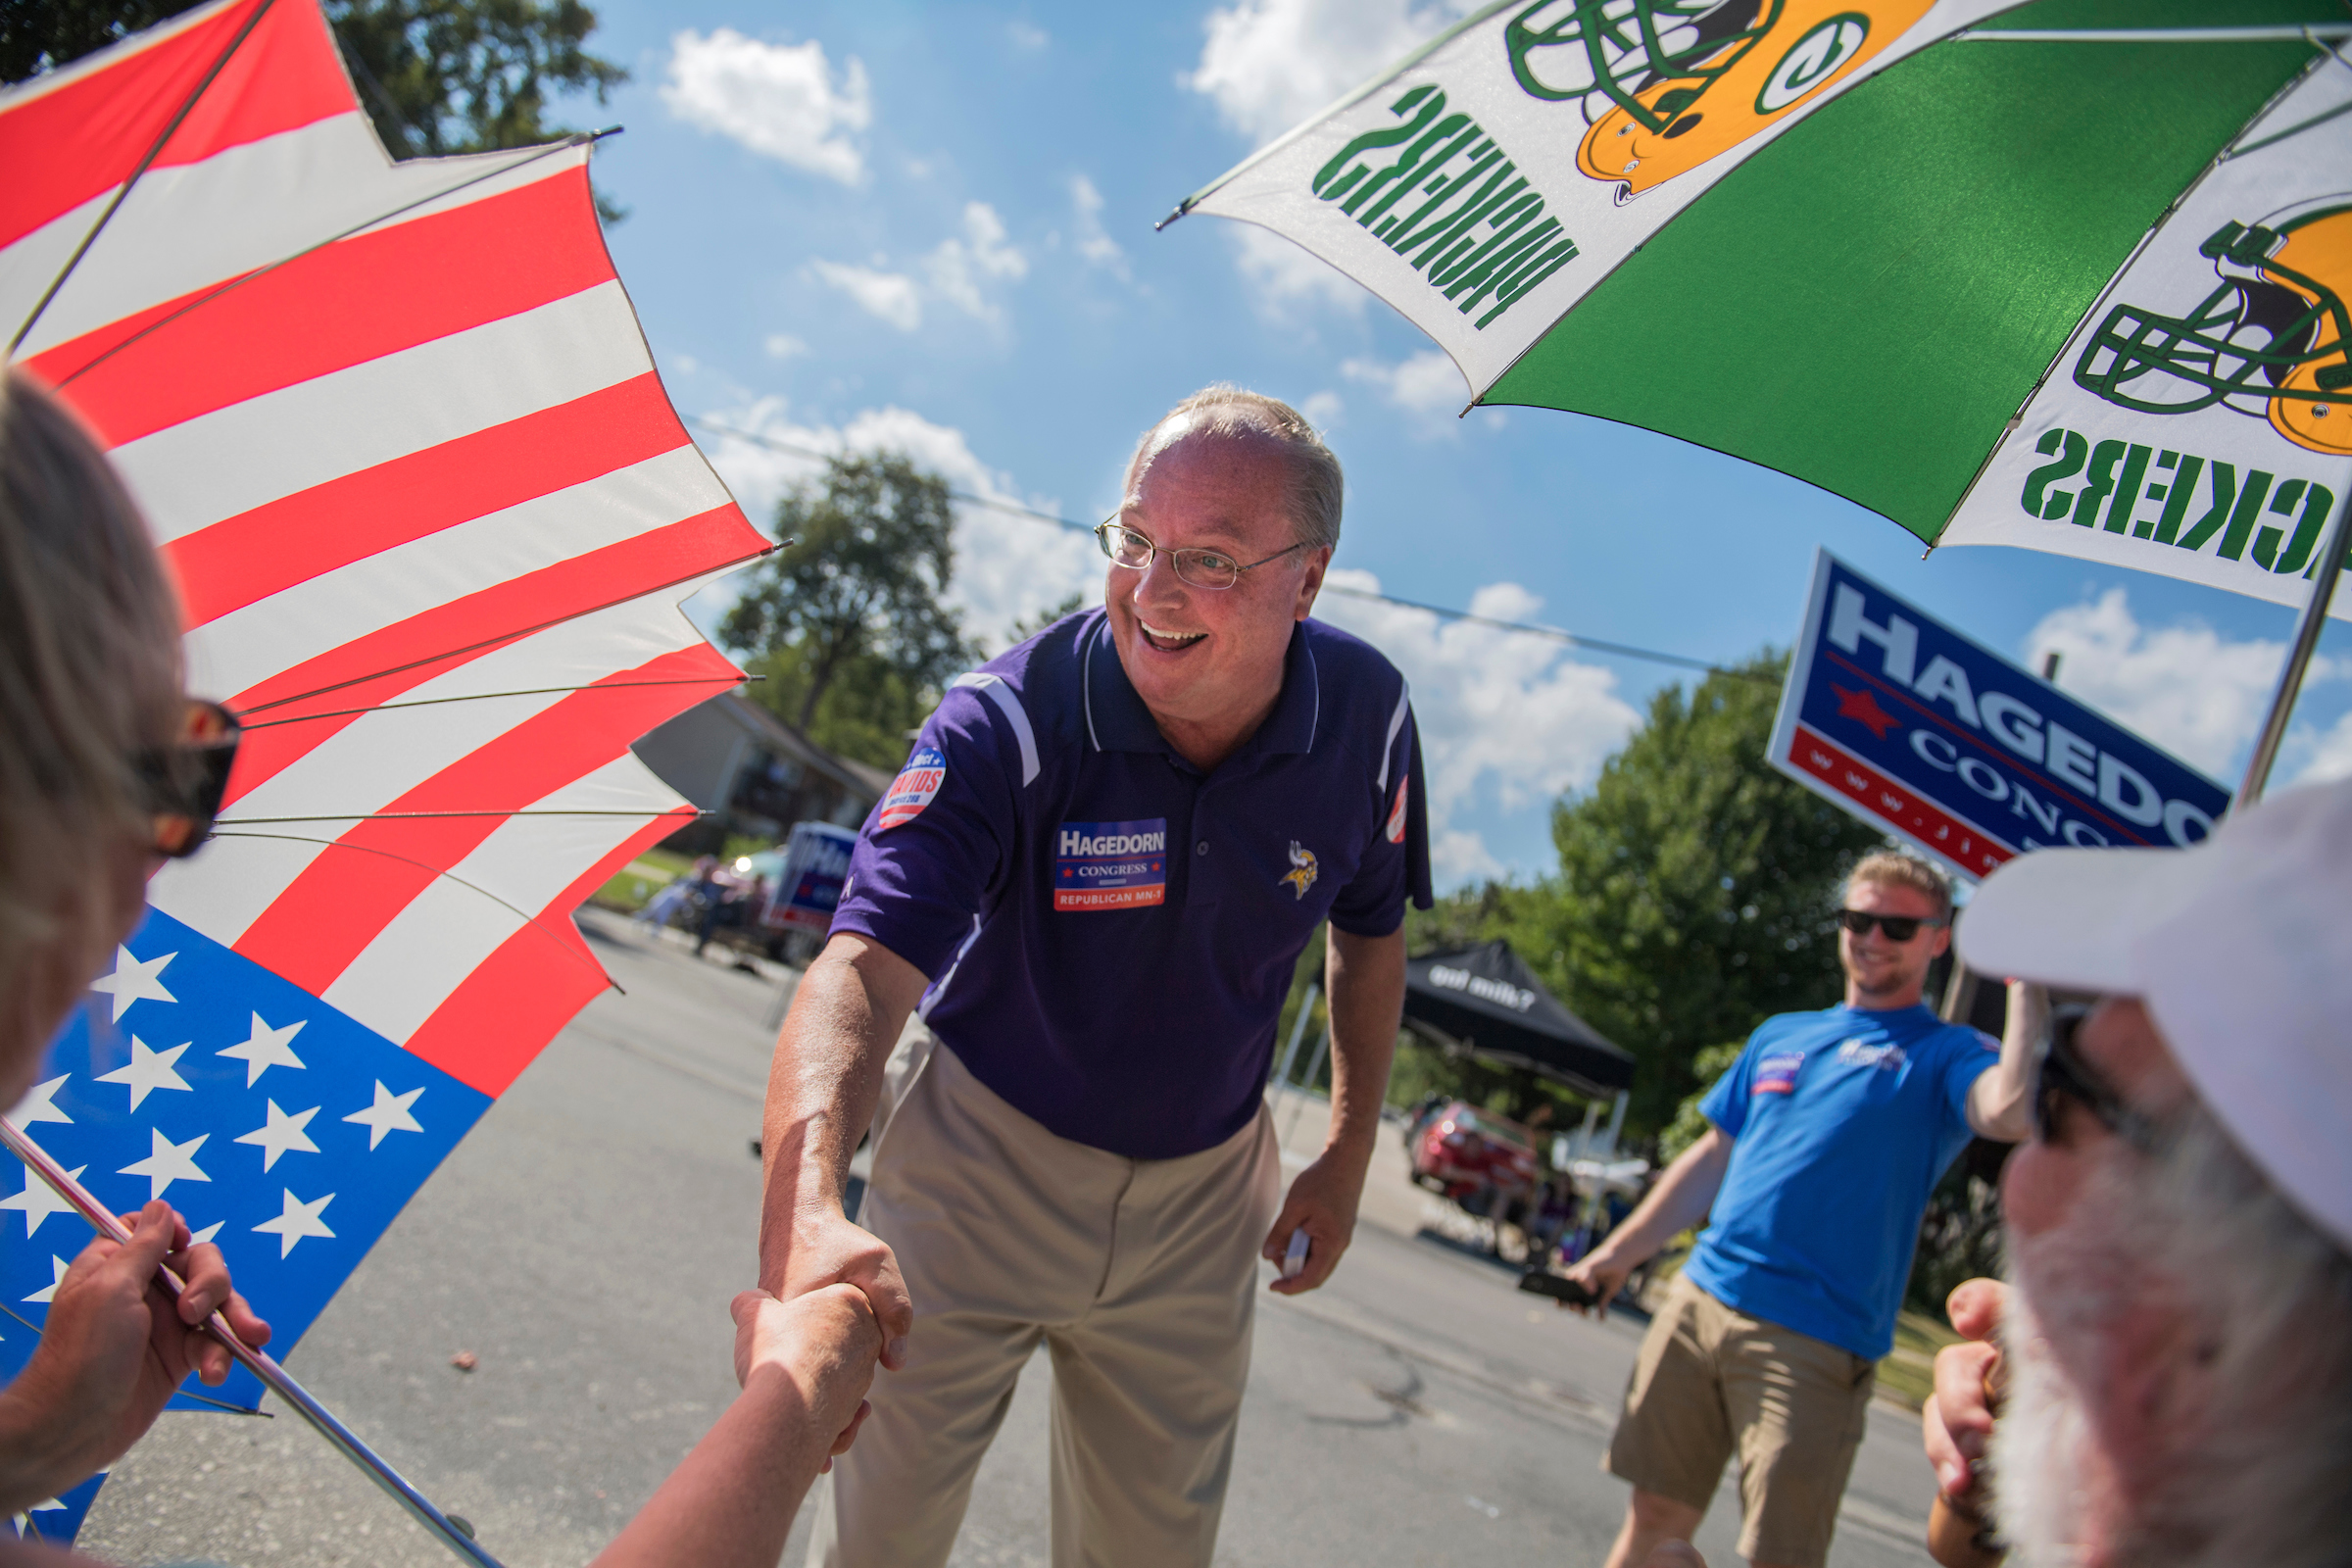 UNITED STATES - SEPTEMBER 16: Jim Hagedorn, Republican candidate for Minnesota's 1st Congressional District, campaigns in the Applefest parade in La Crescent, Minn., on September 16, 2018. (Photo By Tom Williams/CQ Roll Call)